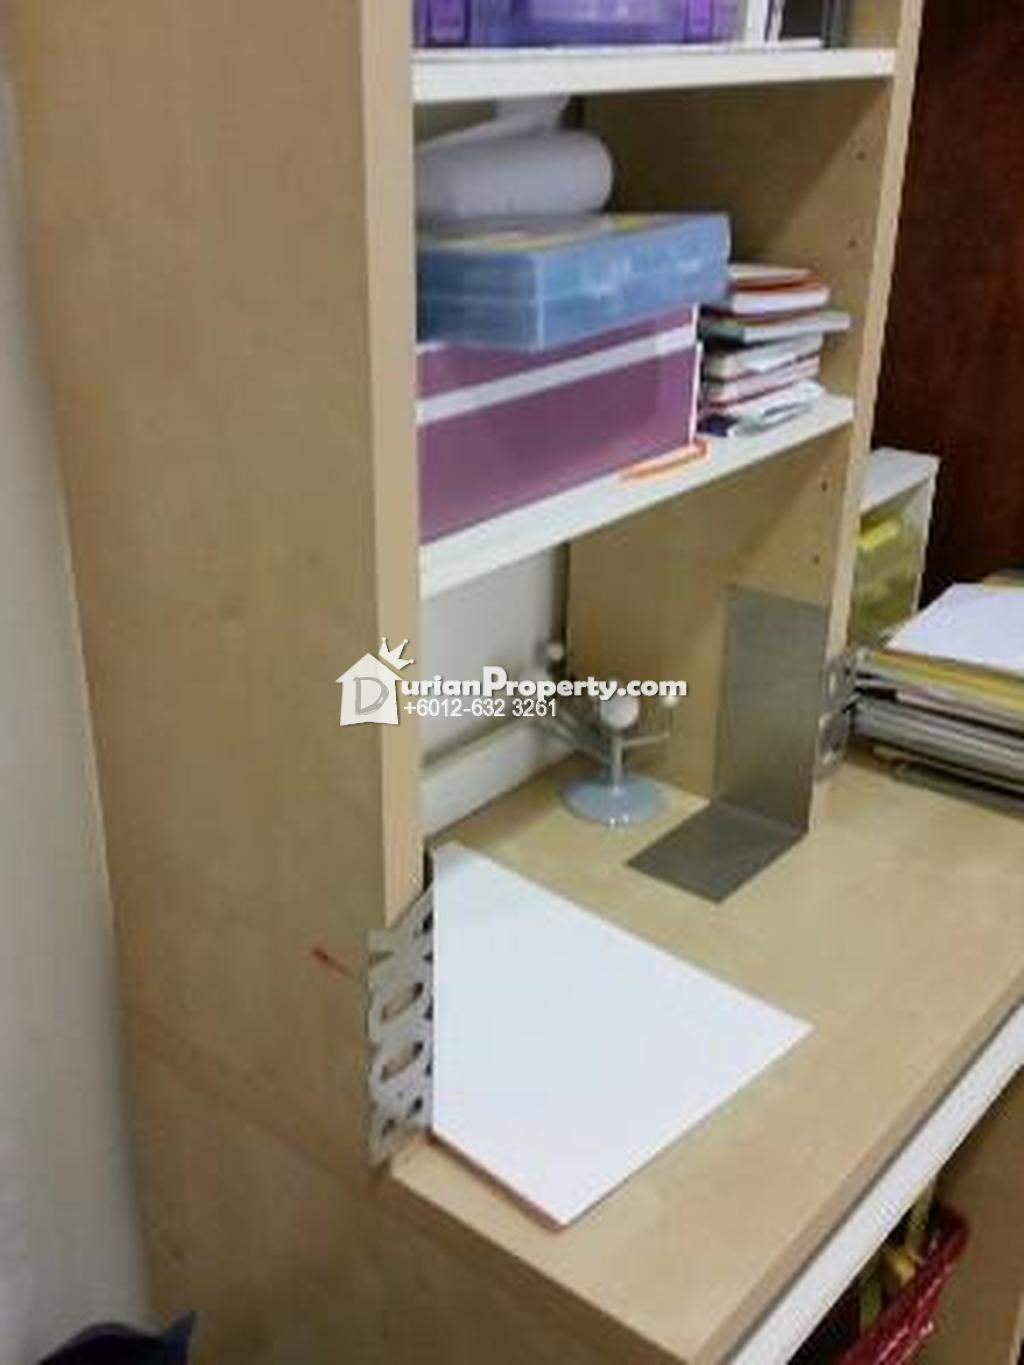 Ikea study table (used) For Sale